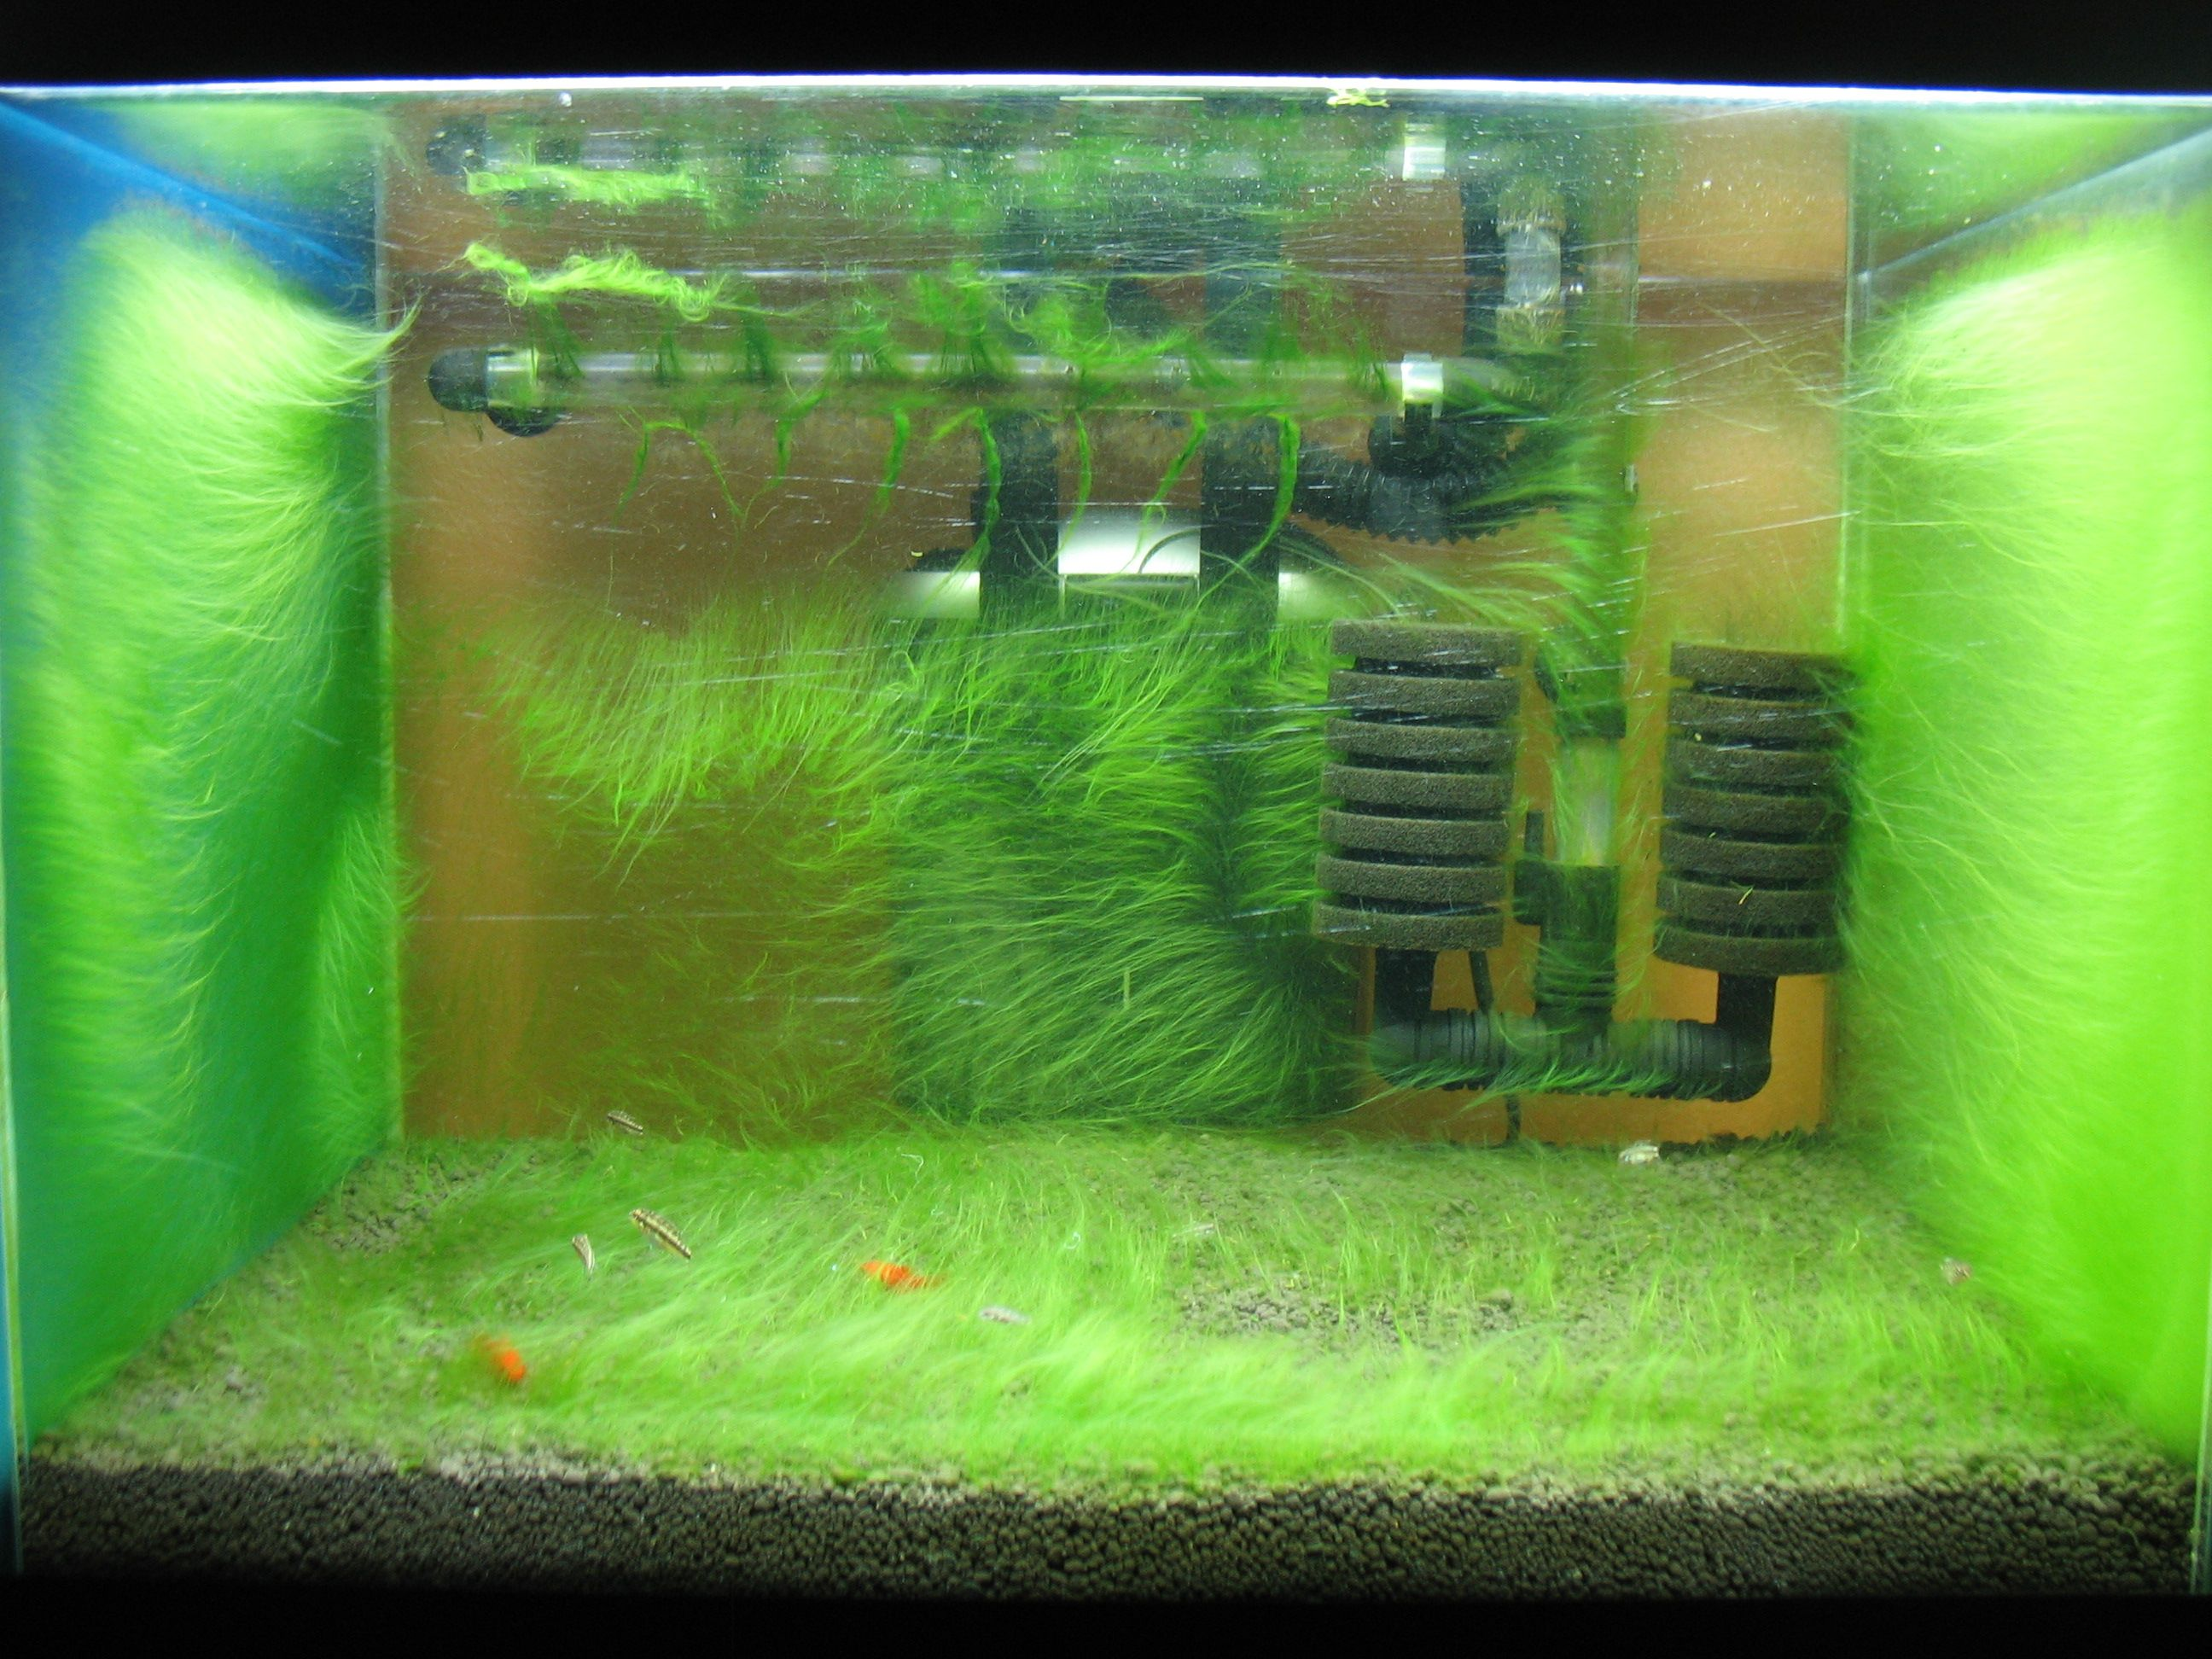 Fish tank in home place - This Might Make A Nice Grow Out Or Shrimp Tank If A Hiding Place